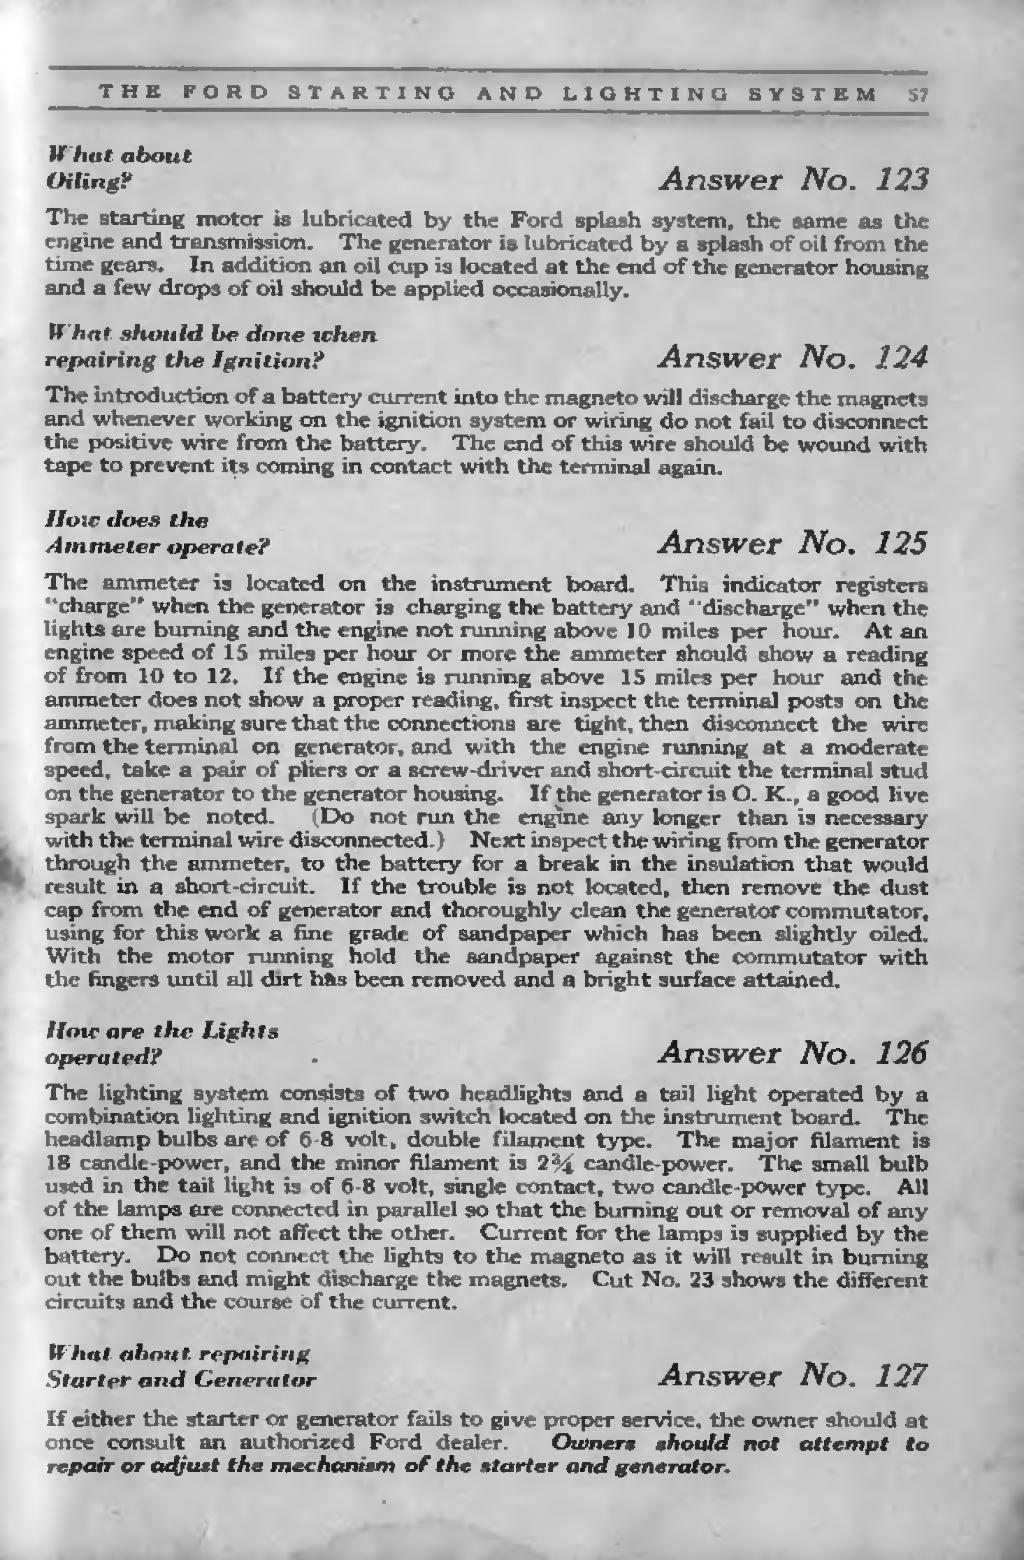 Pageford Manual 1919djvu 57 Wikisource The Free Online Library Model A Ford Generator Wiring If Either Starter Or Fails To Give Proper Service Owner Should At Once Consult An Authorized Dealer Owners Not Attempt